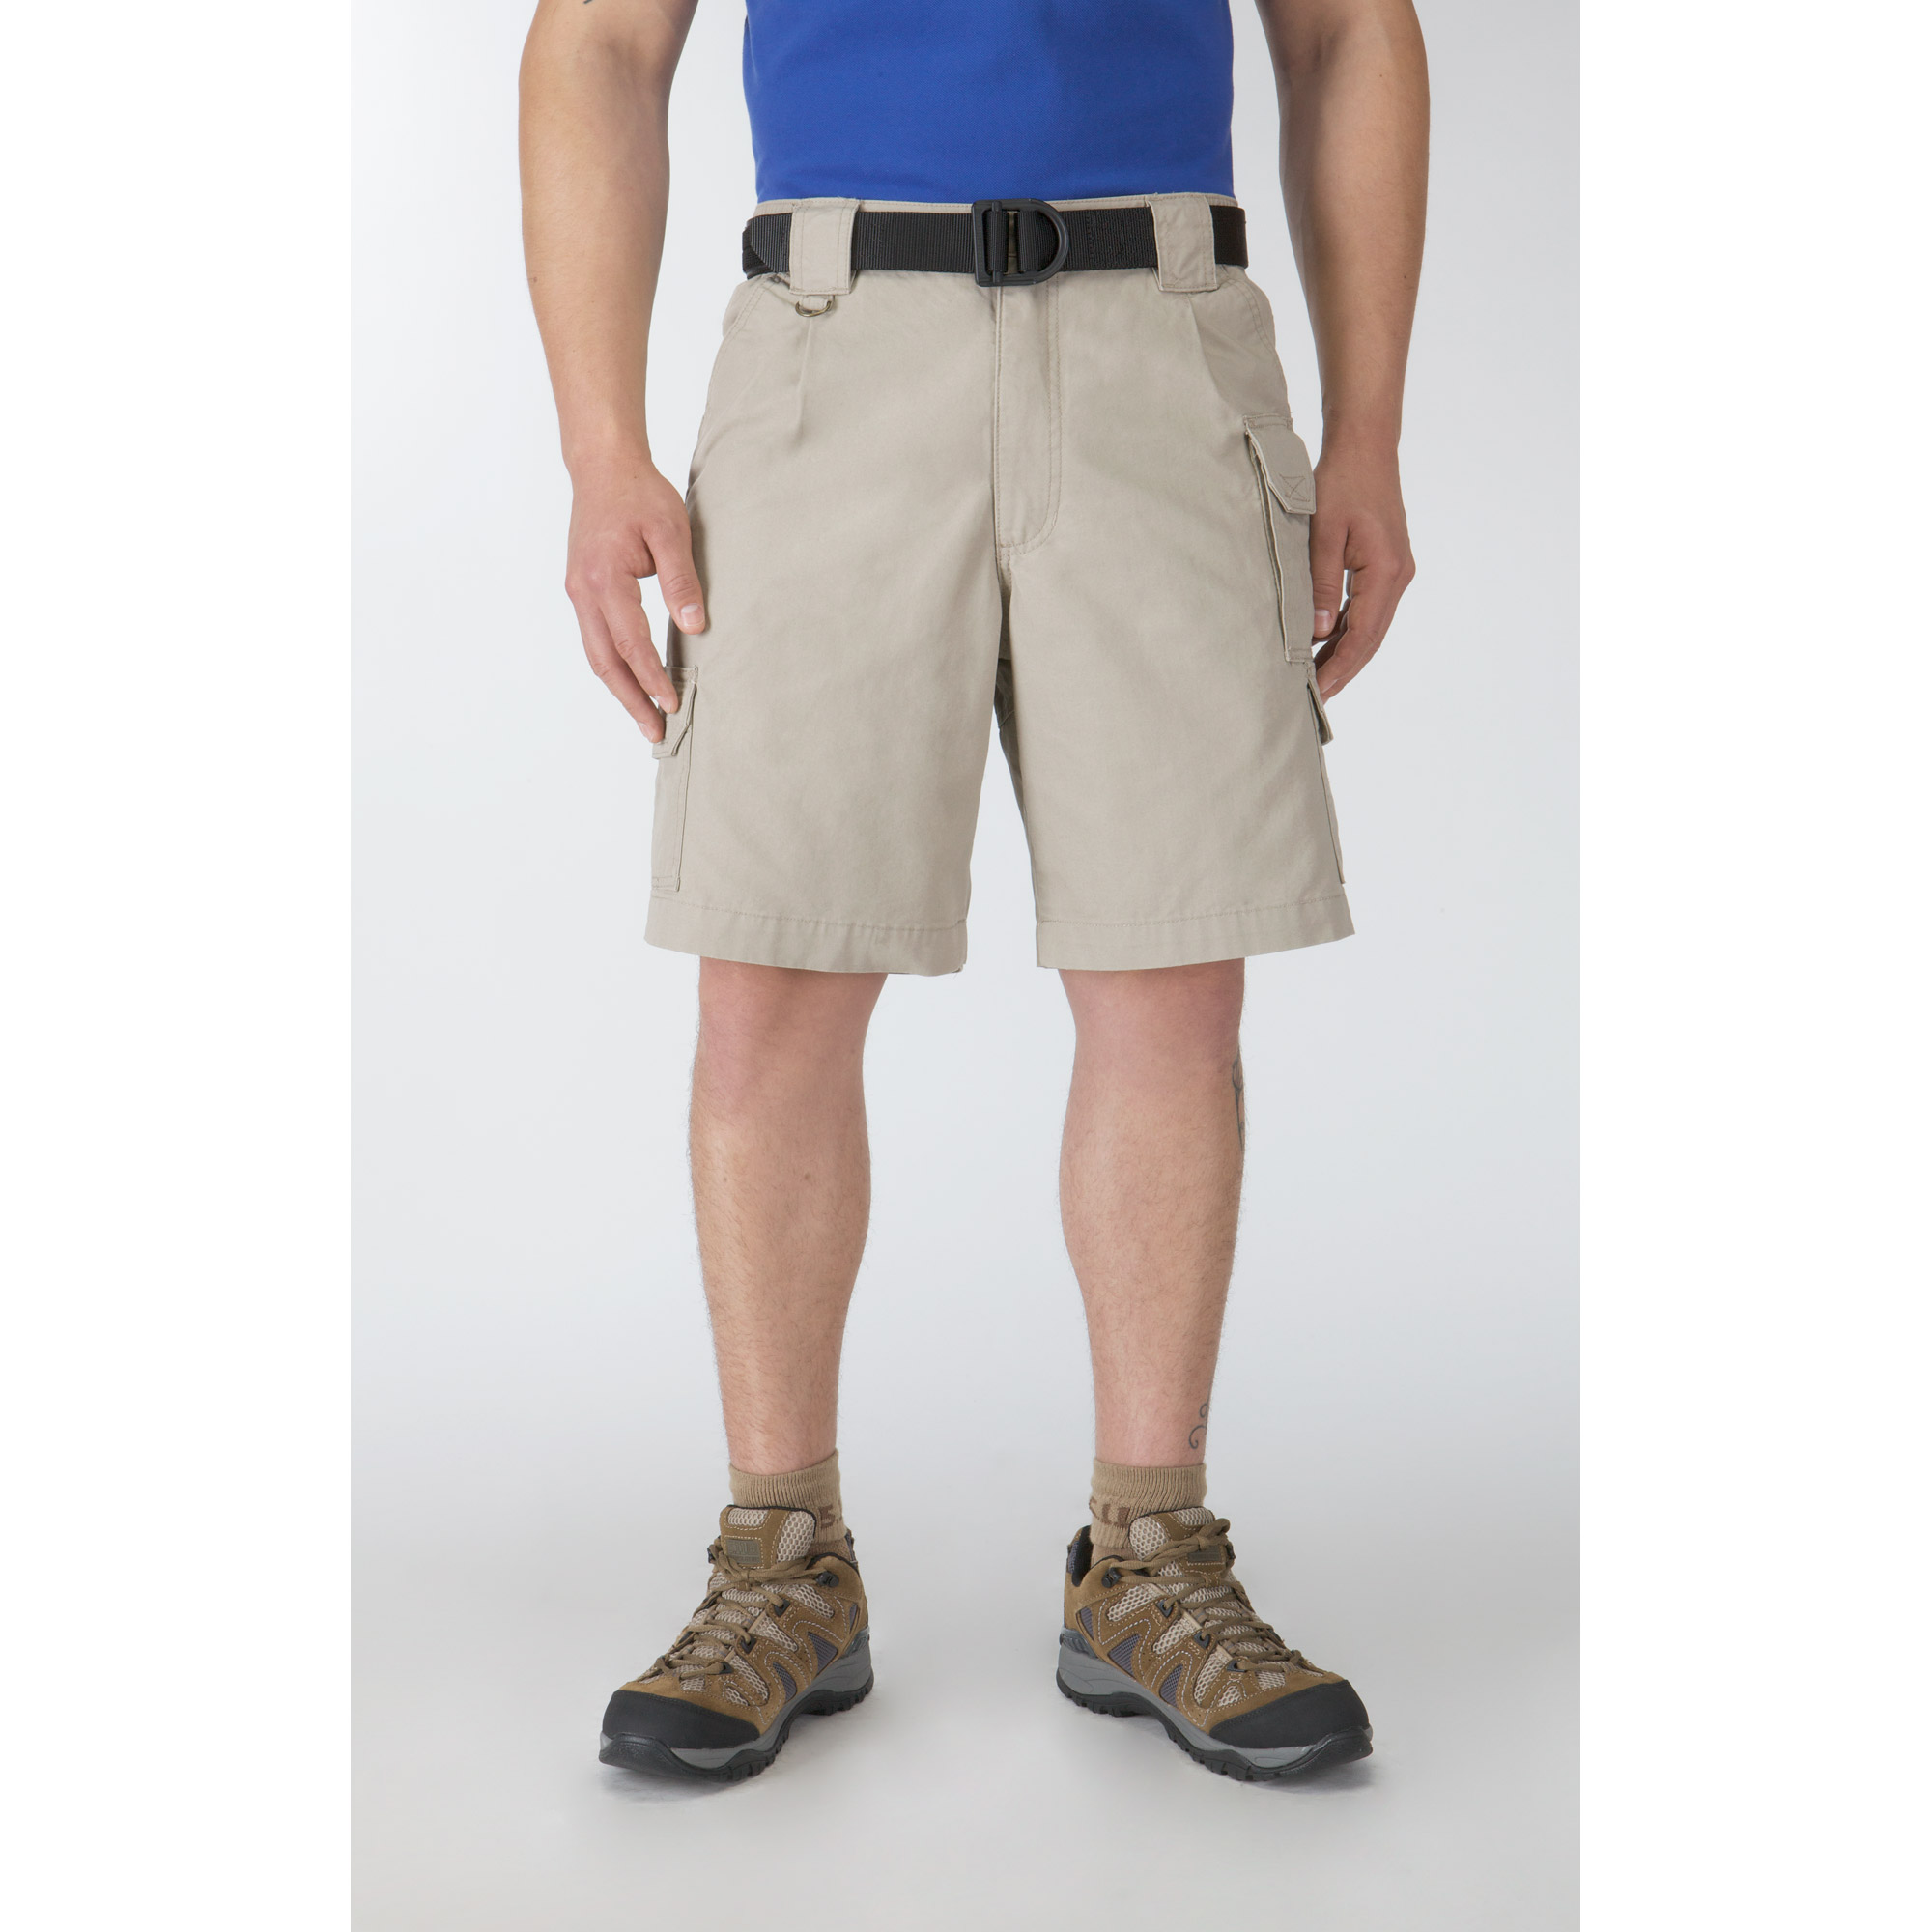 5.11 Tactical Mens Cargo Shorts at Sears.com